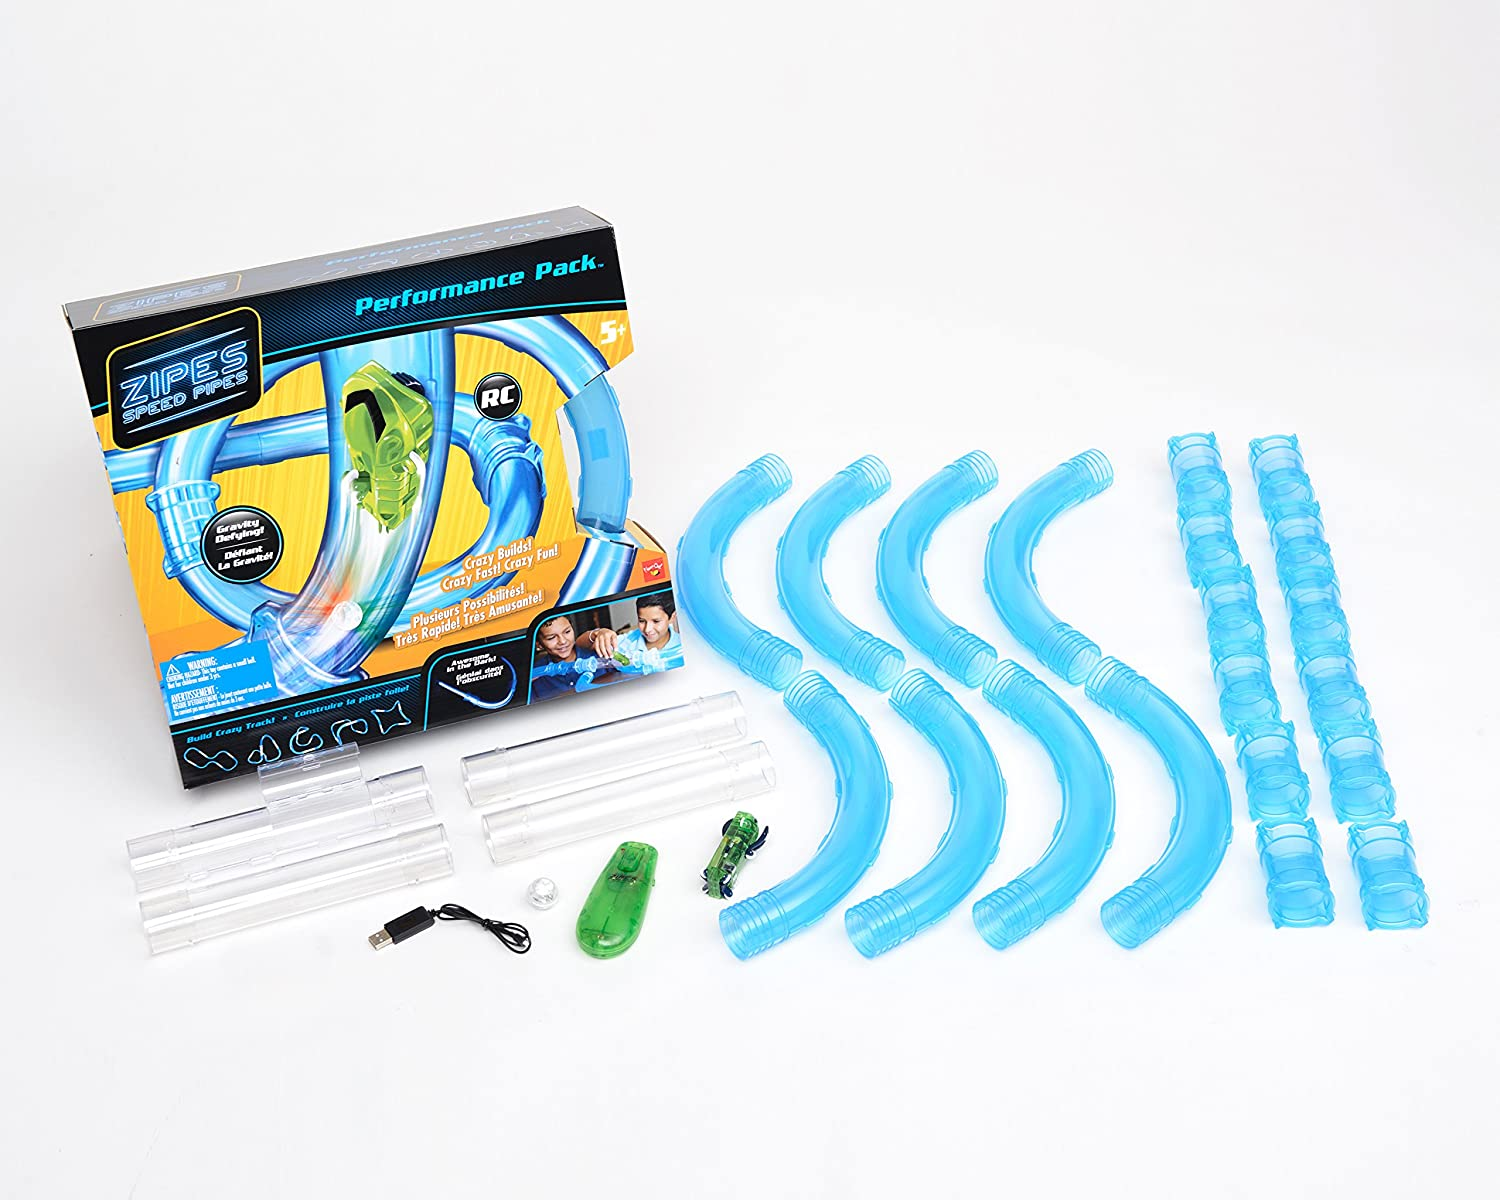 Zipes Speed Pipes - Performance Pack